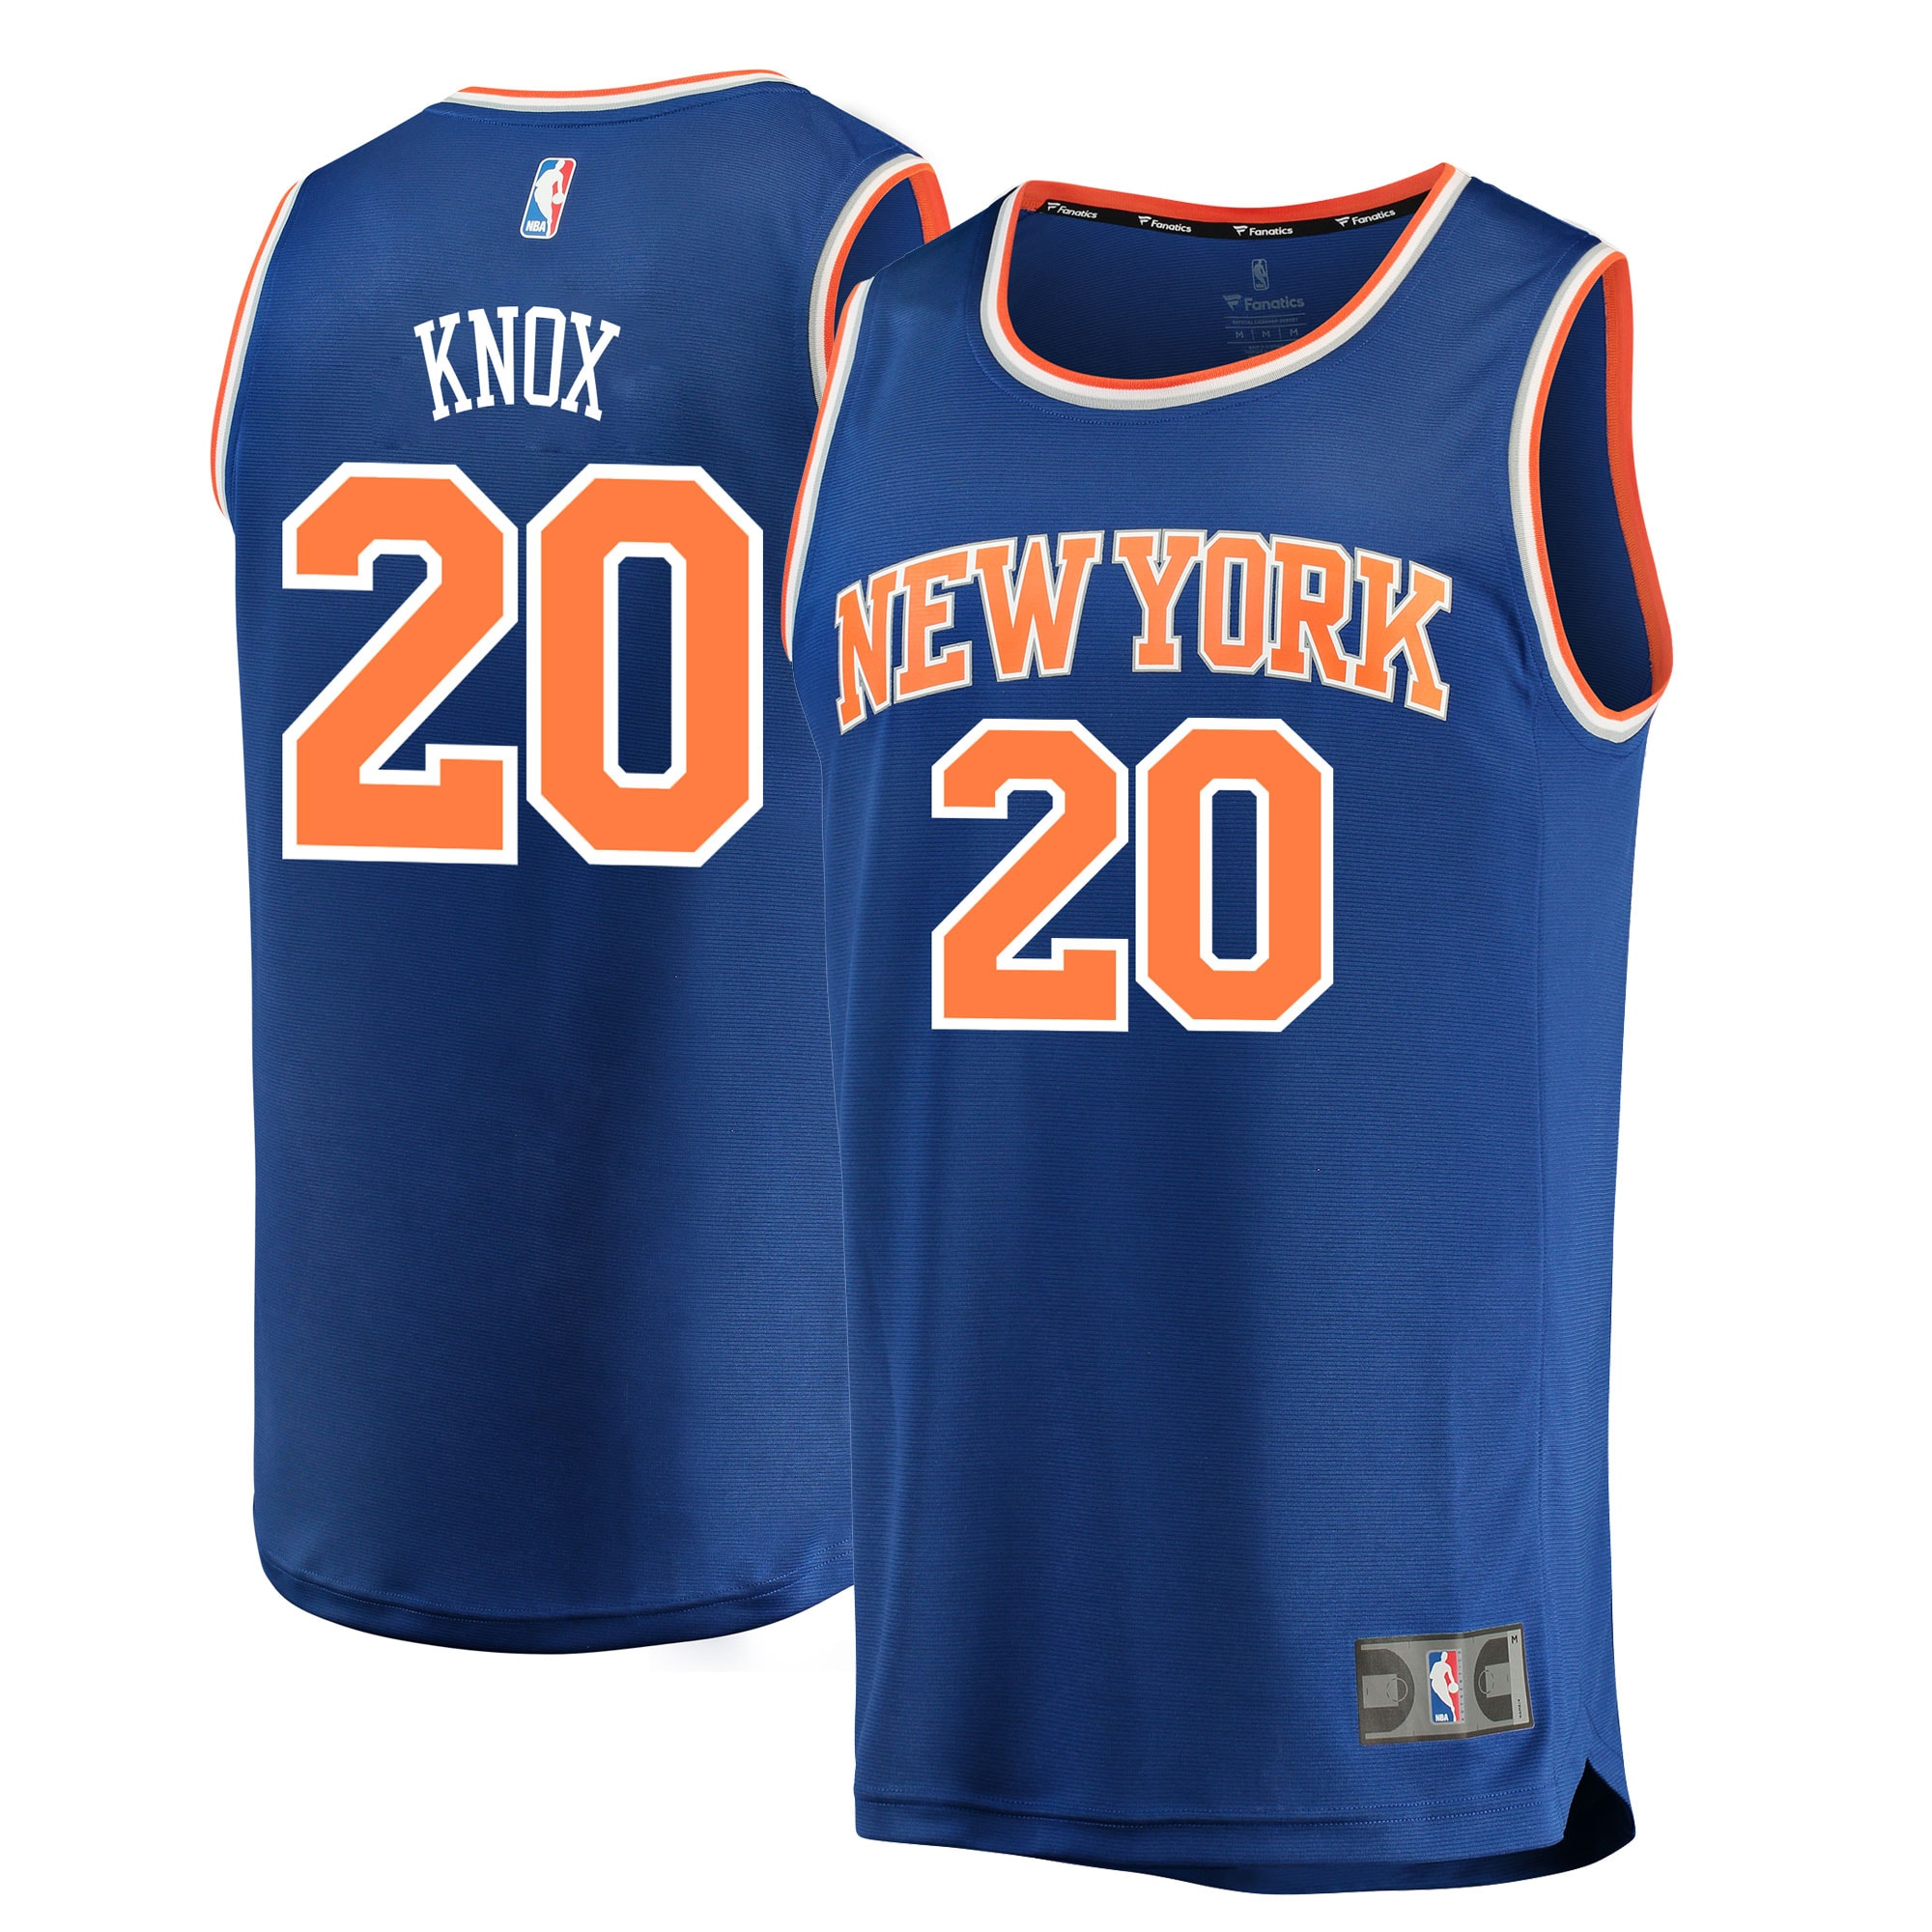 Kevin Knox New York Knicks Fanatics Branded Fast Break Replica Jersey - Icon Edition - Blue